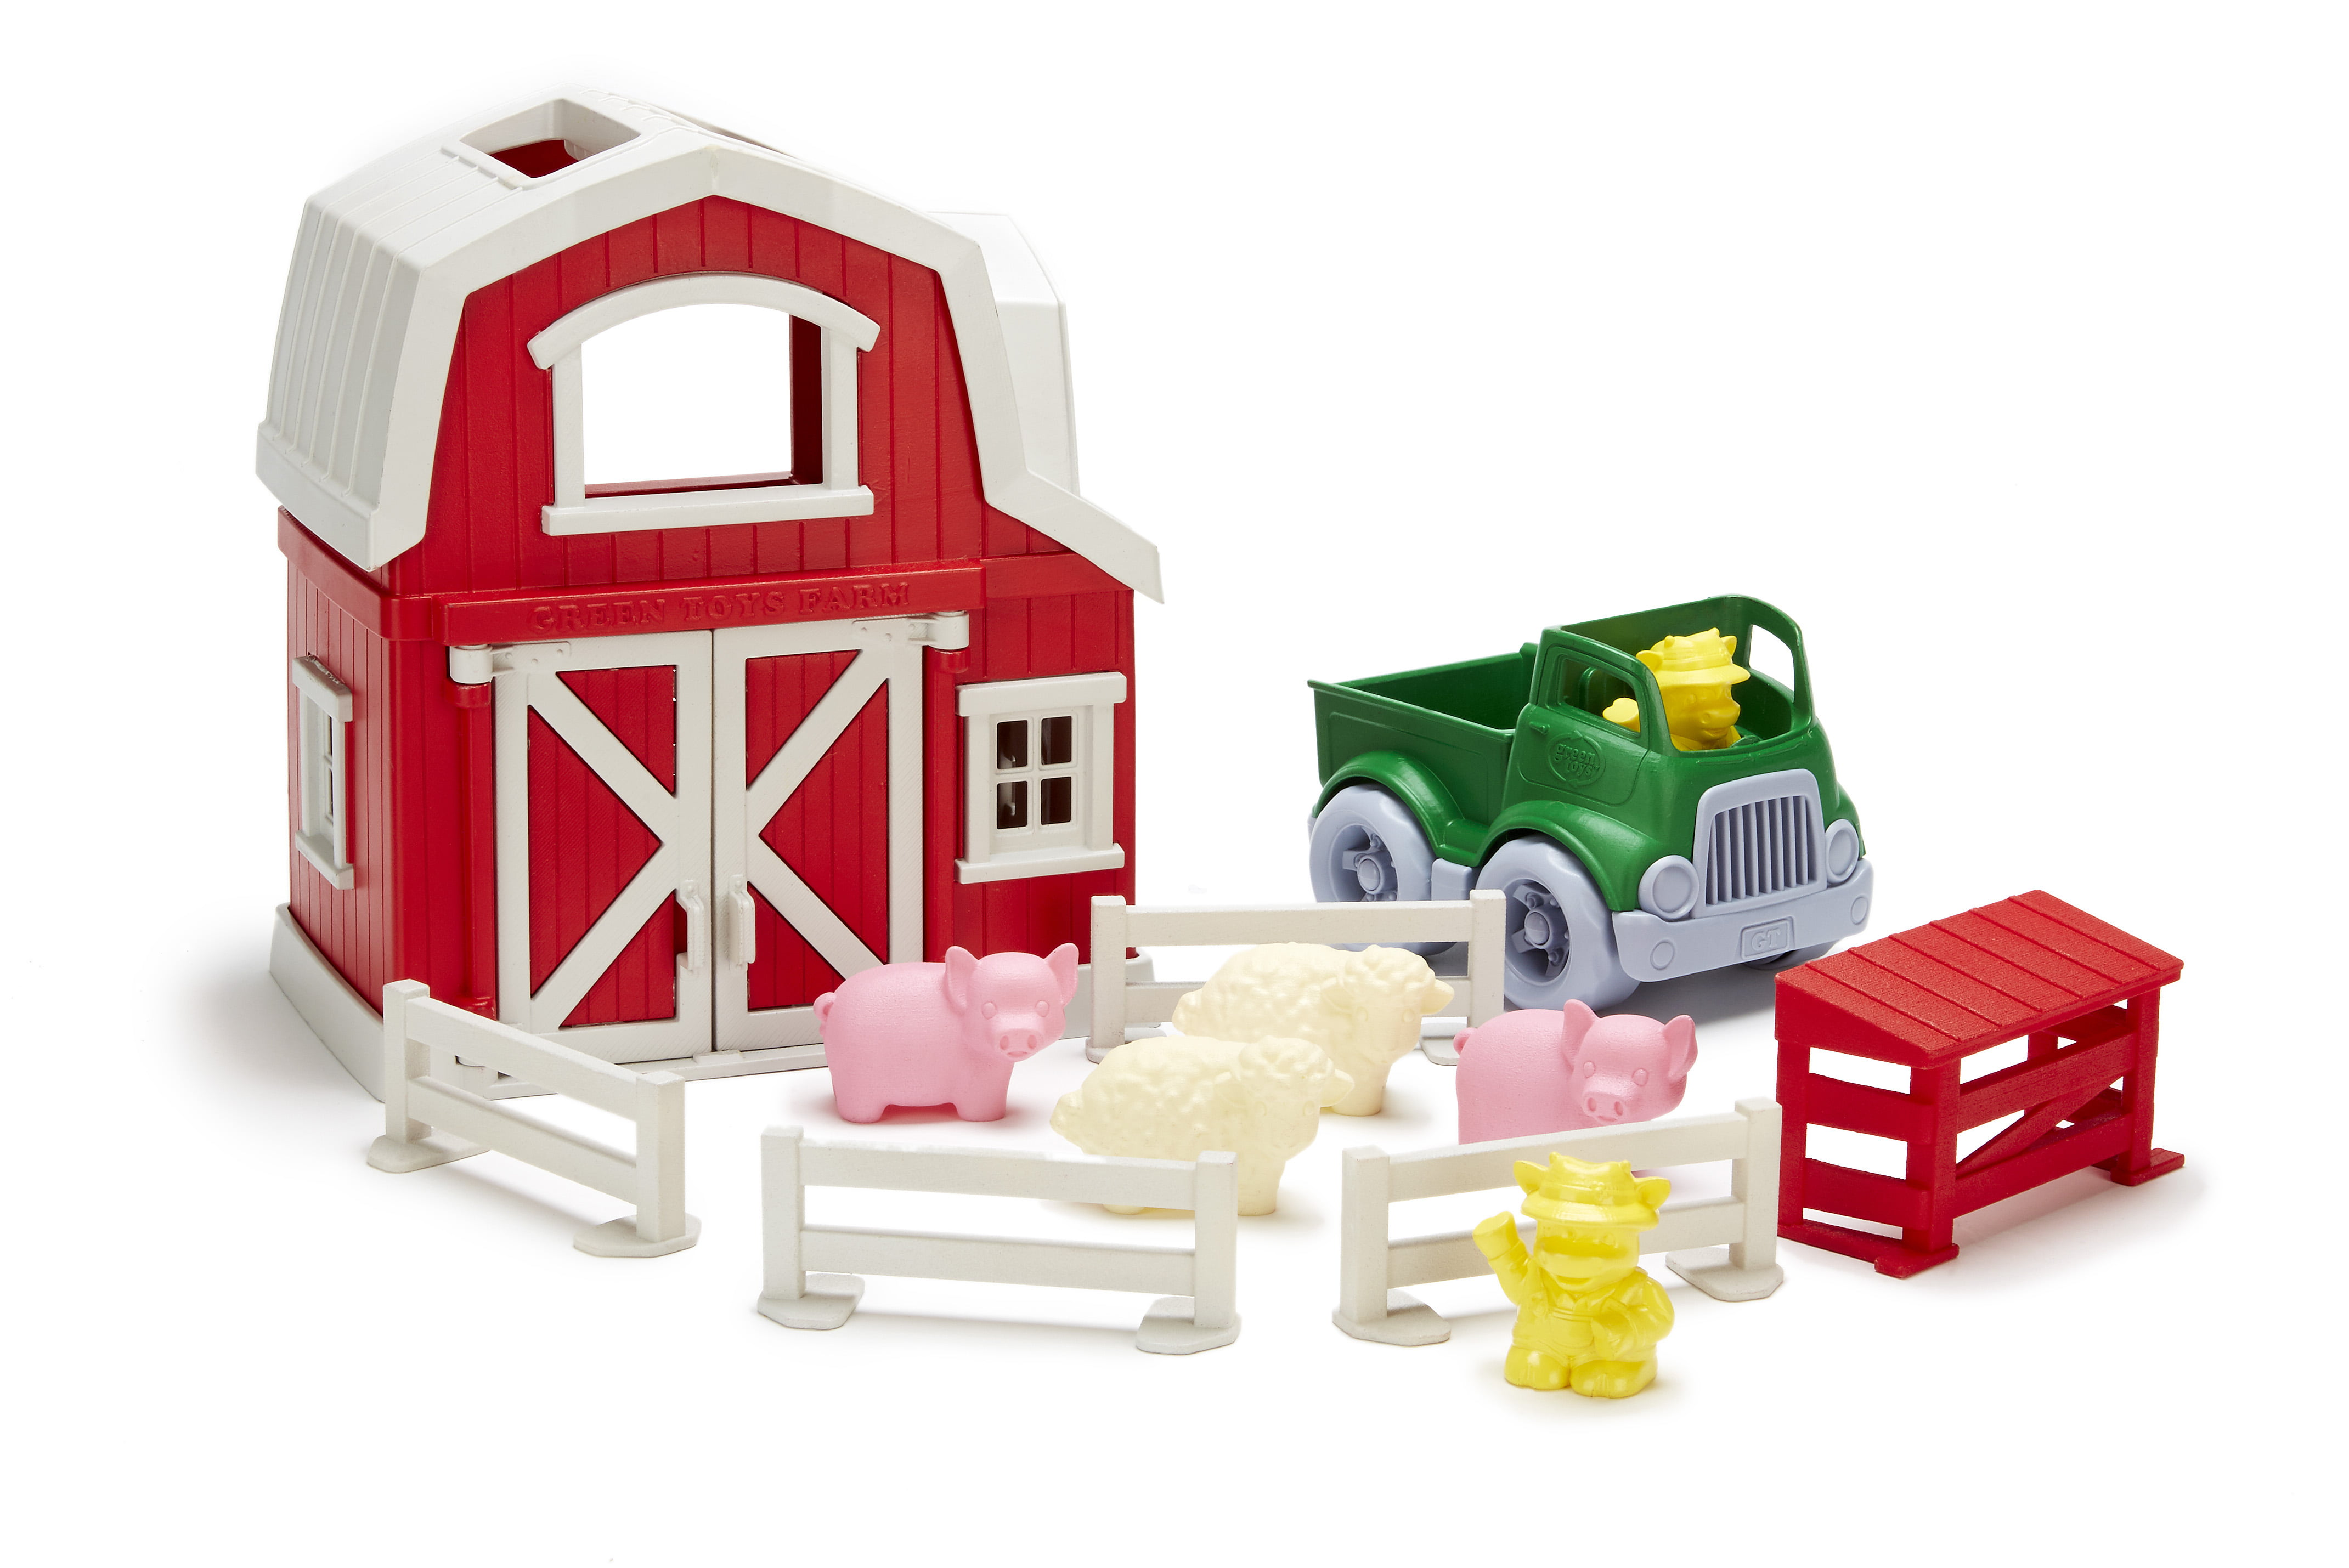 Cookware and Dinnerware Set 27 Piece Set by Green Toys 100/% recycled materials